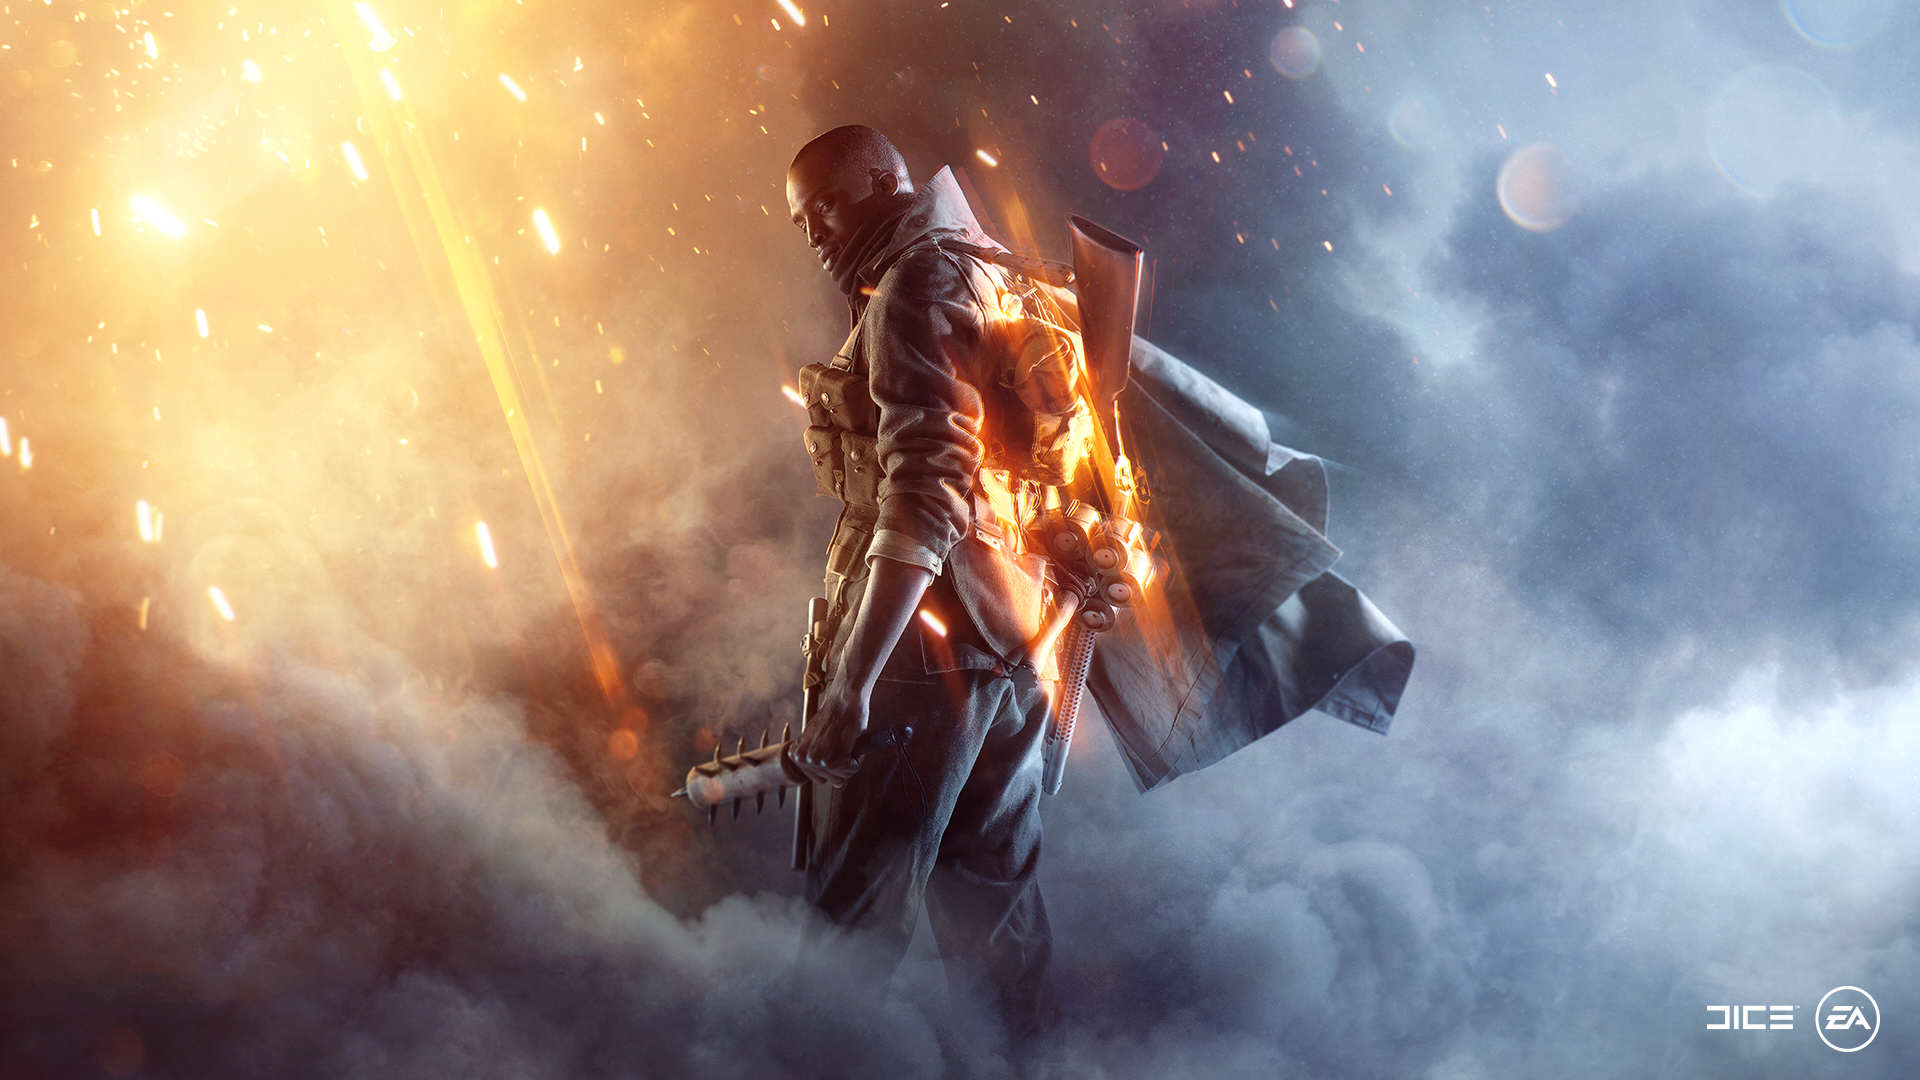 rendition1.img  2 All Confirmed Battlefield 1 Maps And Modes